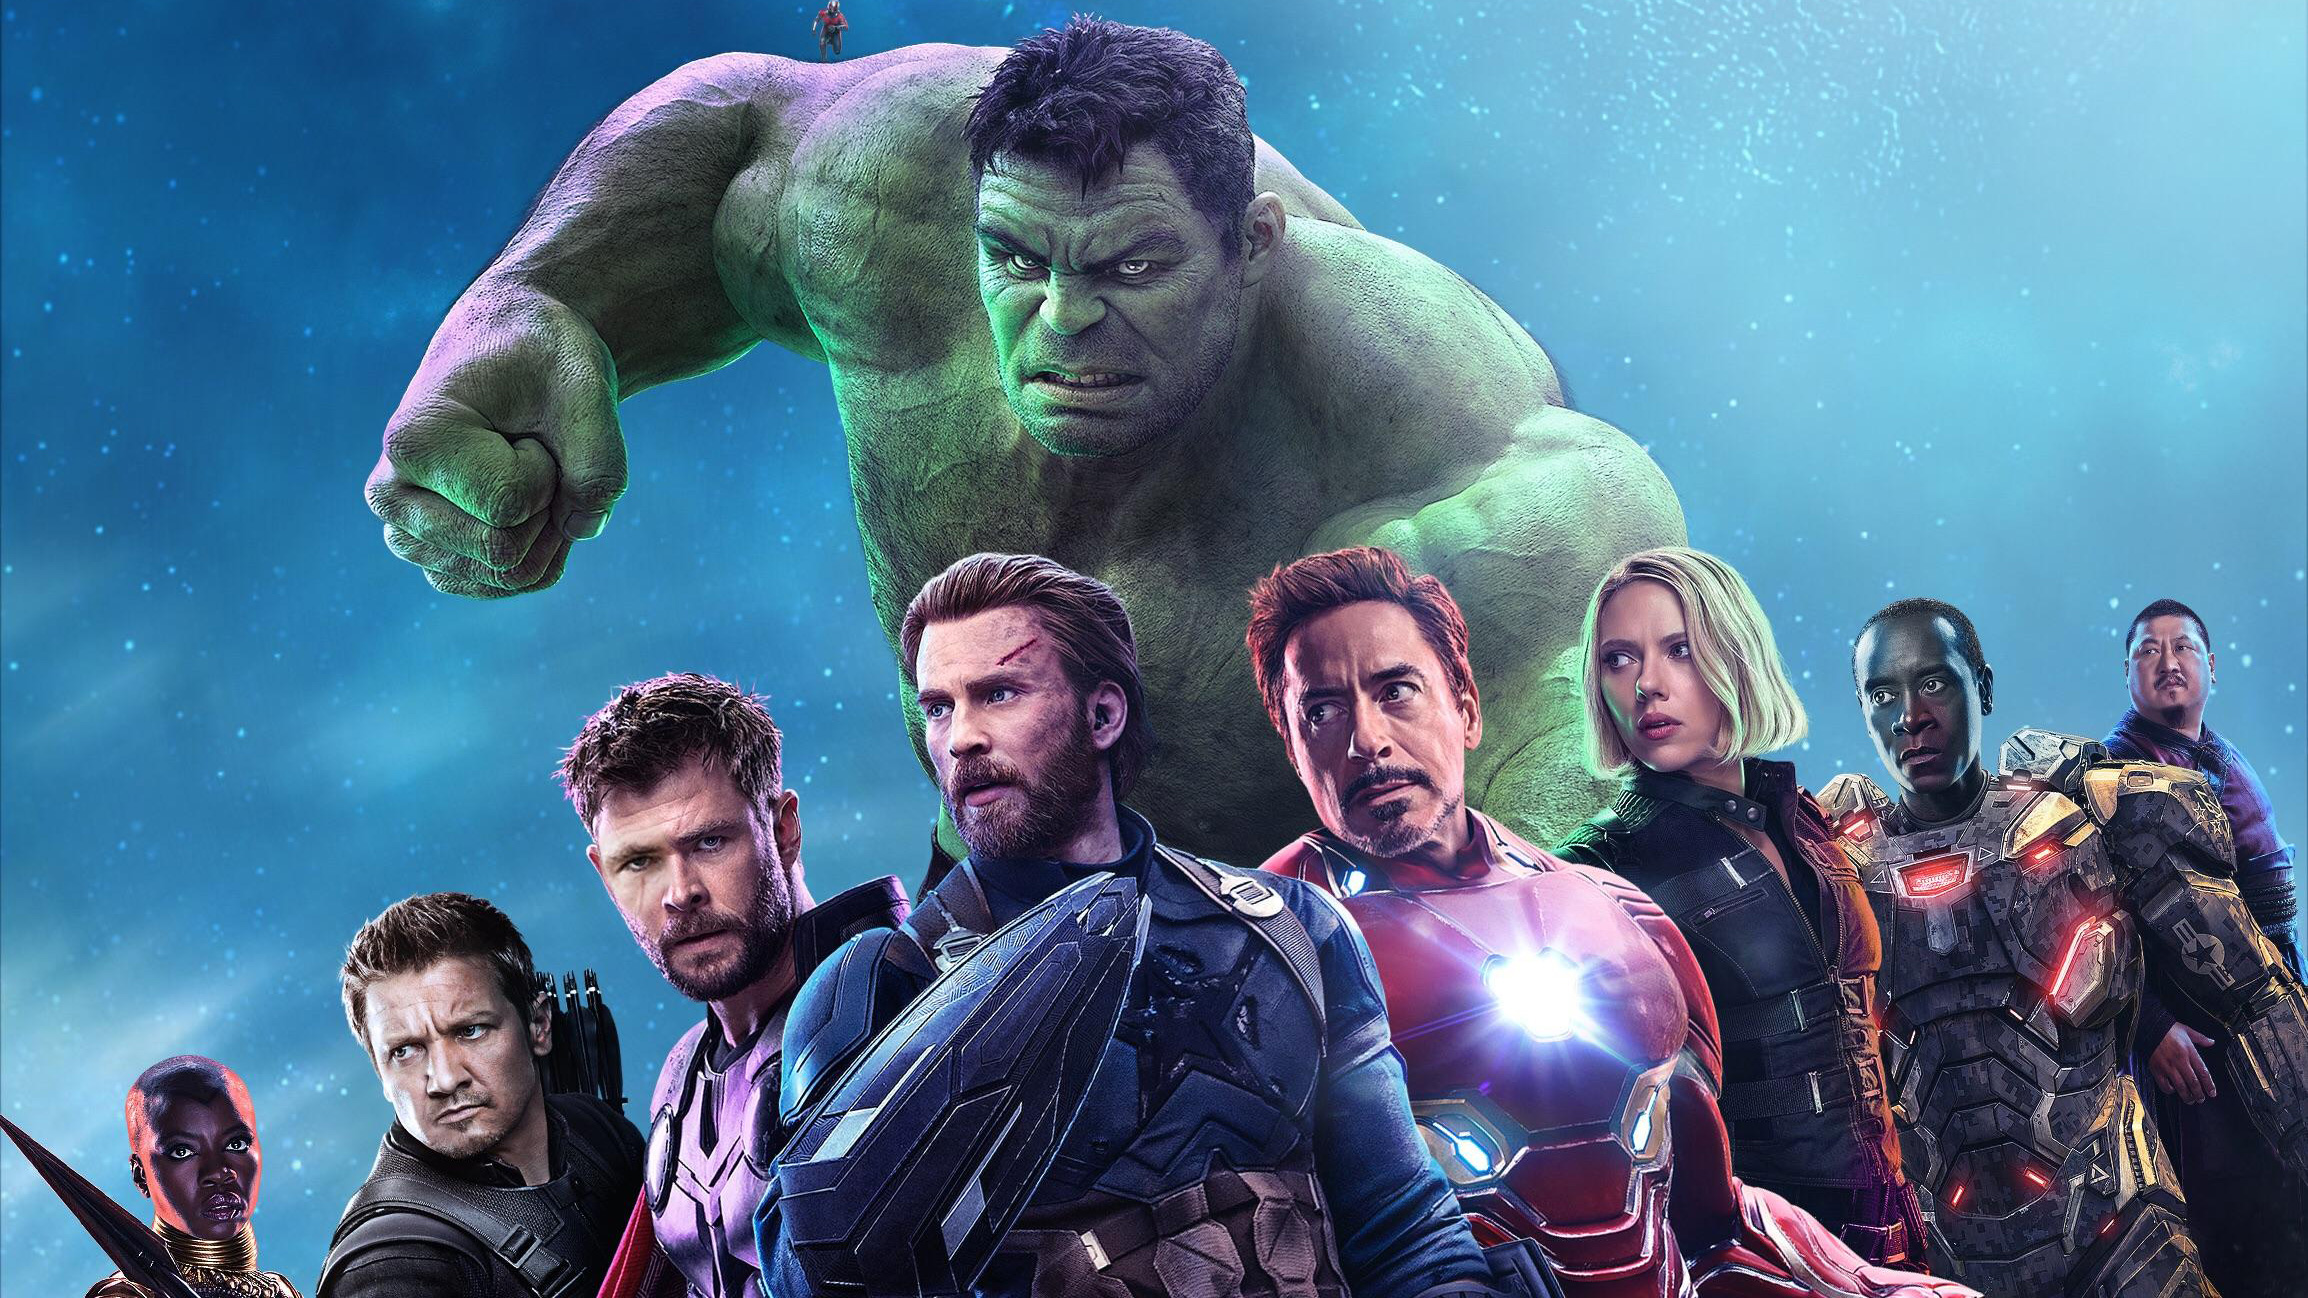 Movie Poster 2019: Avengers End Game 2019 Movie, HD Movies, 4k Wallpapers